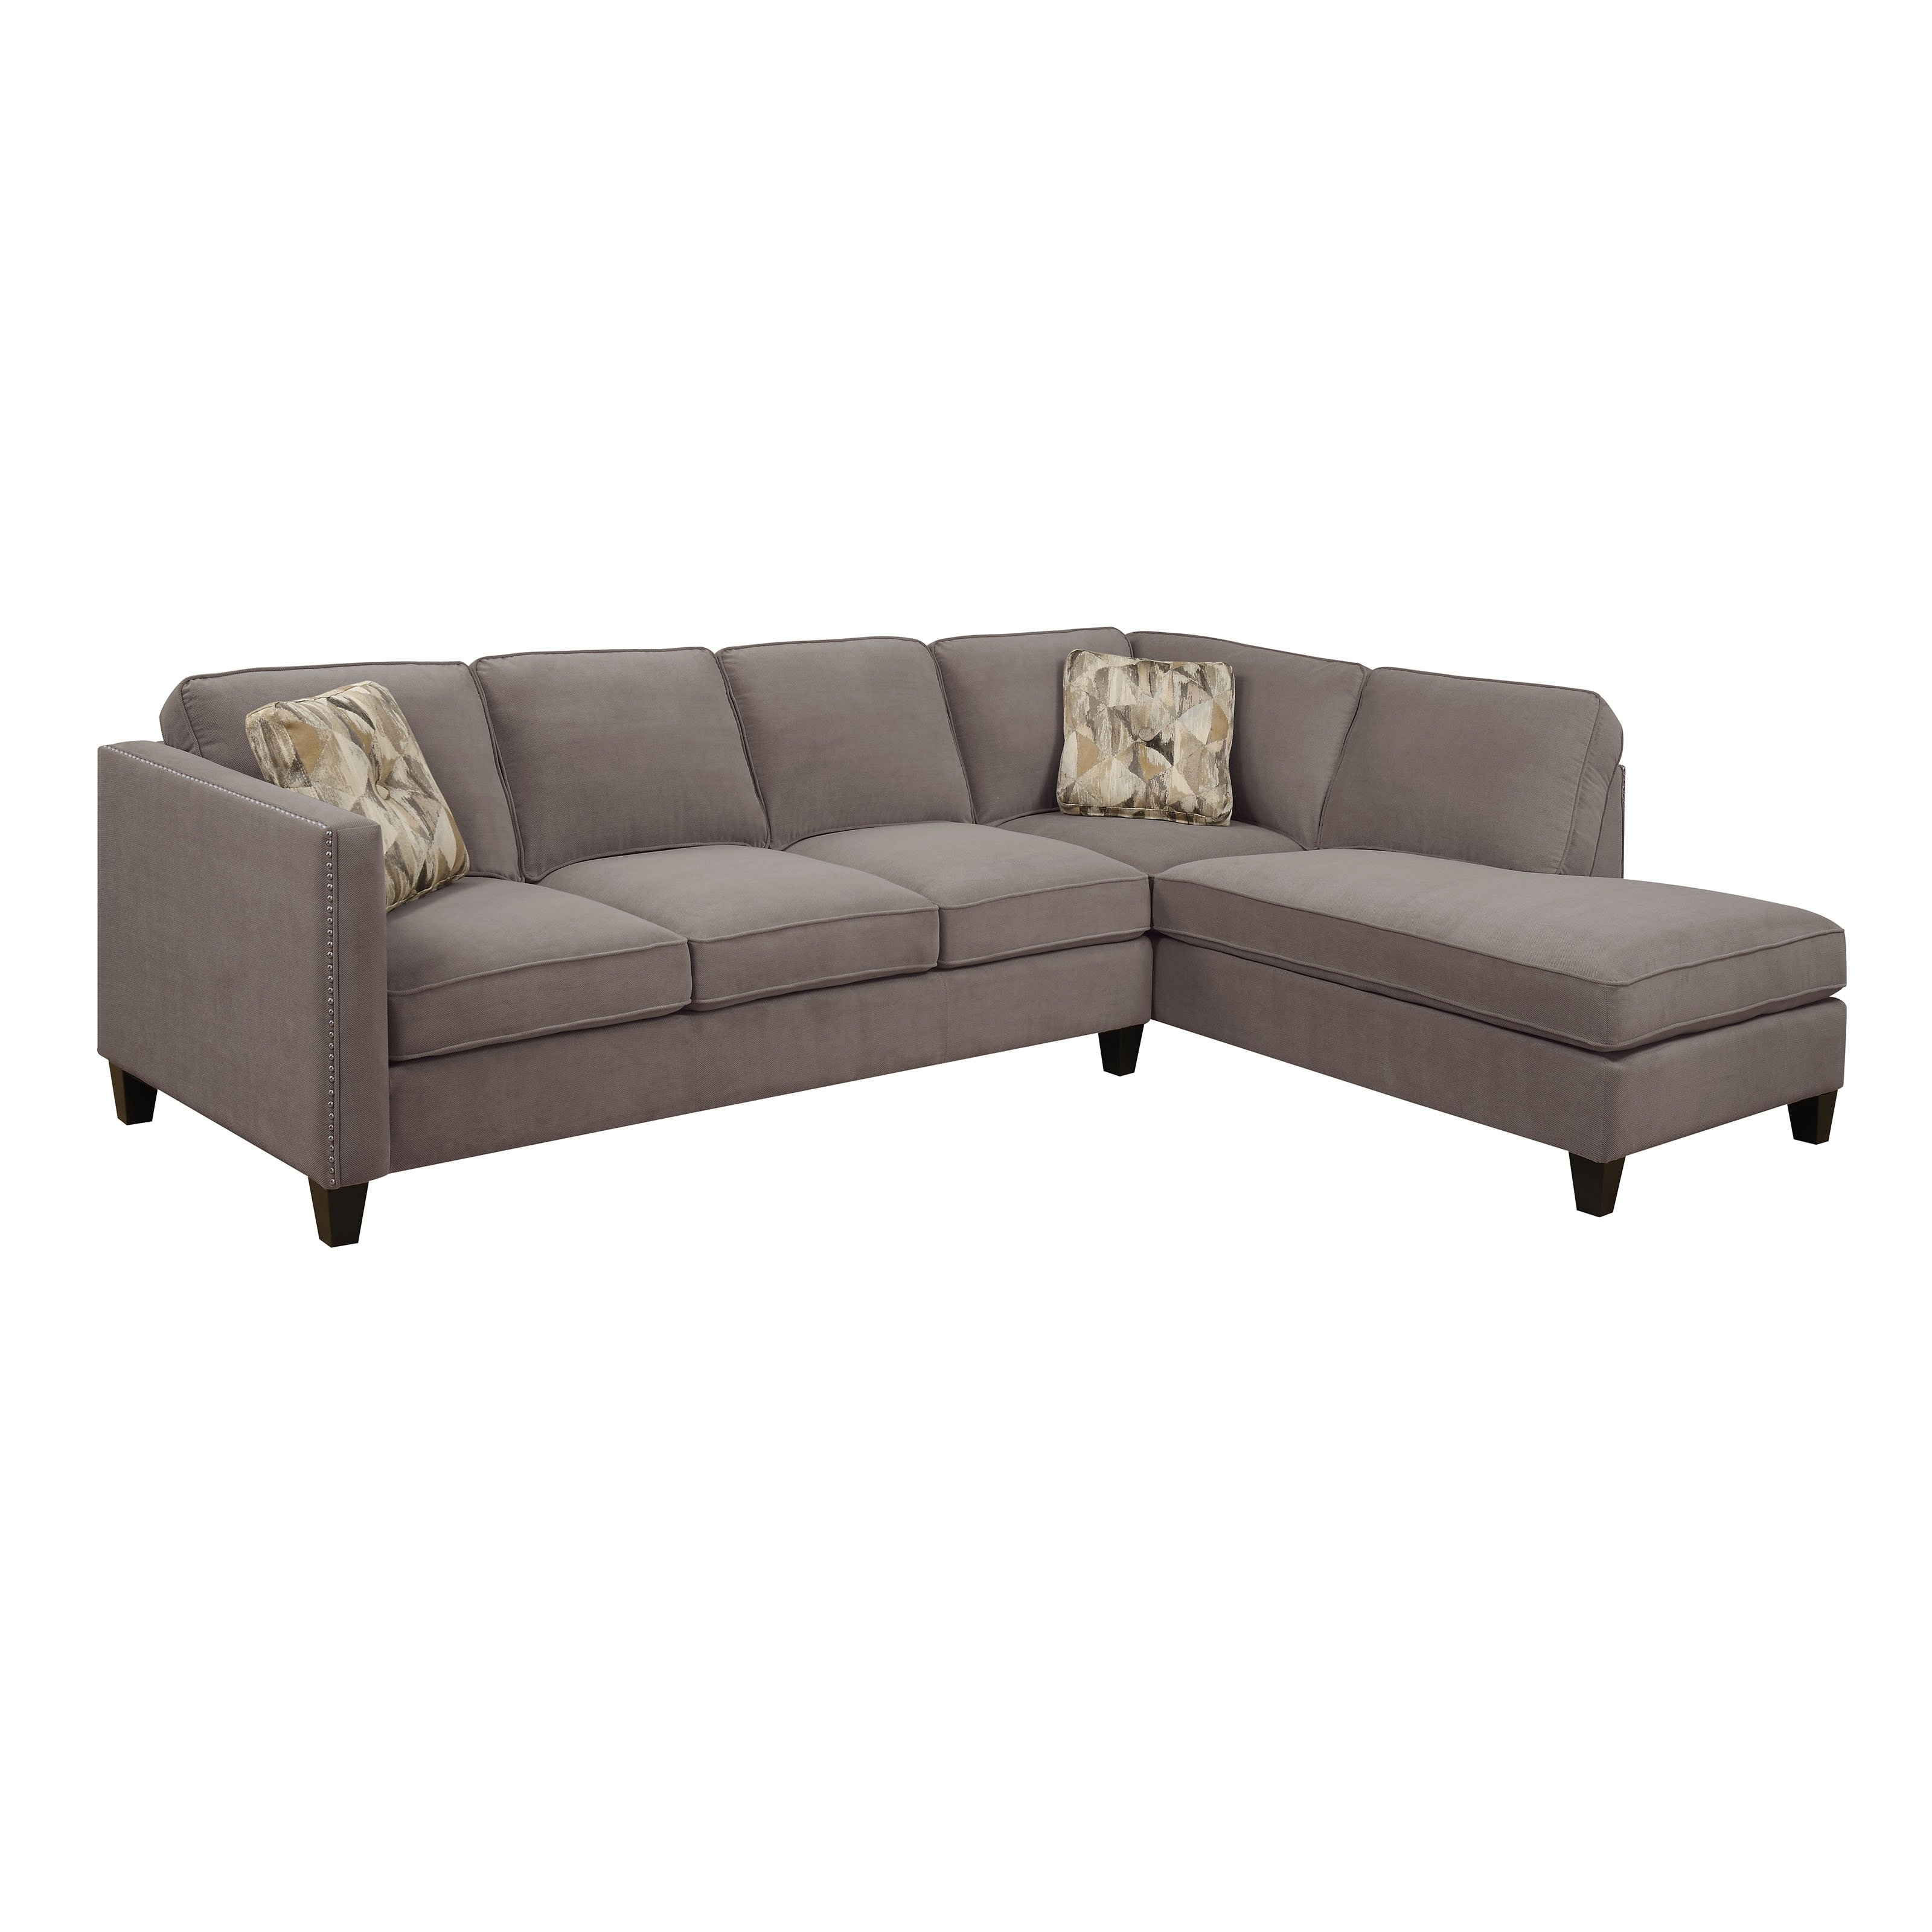 Emerald Home Focus 2 Piece Sectional Sofa With Chaise - Walmart regarding Dufresne Sectional Sofas (Image 10 of 10)